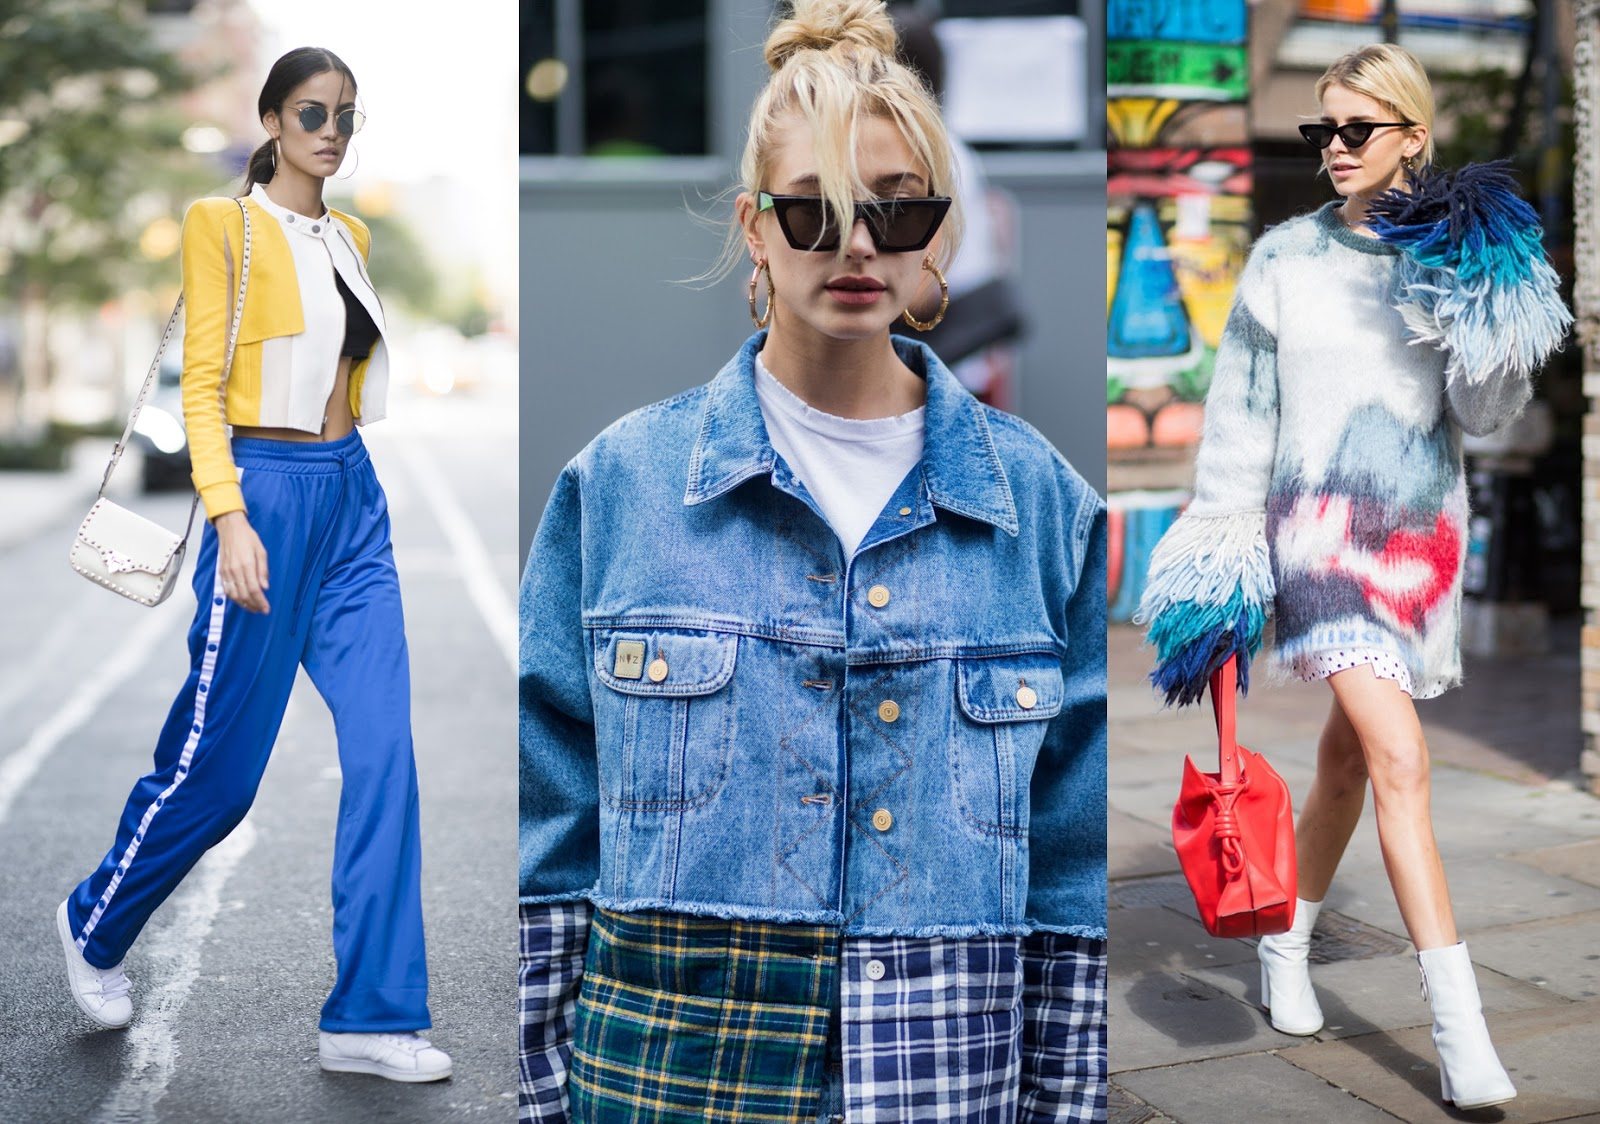 http://www.recklessdiary.ru/2018/03/top-10-fashion-trends-spring-summer-2018-what-wear-stars-street-style.html